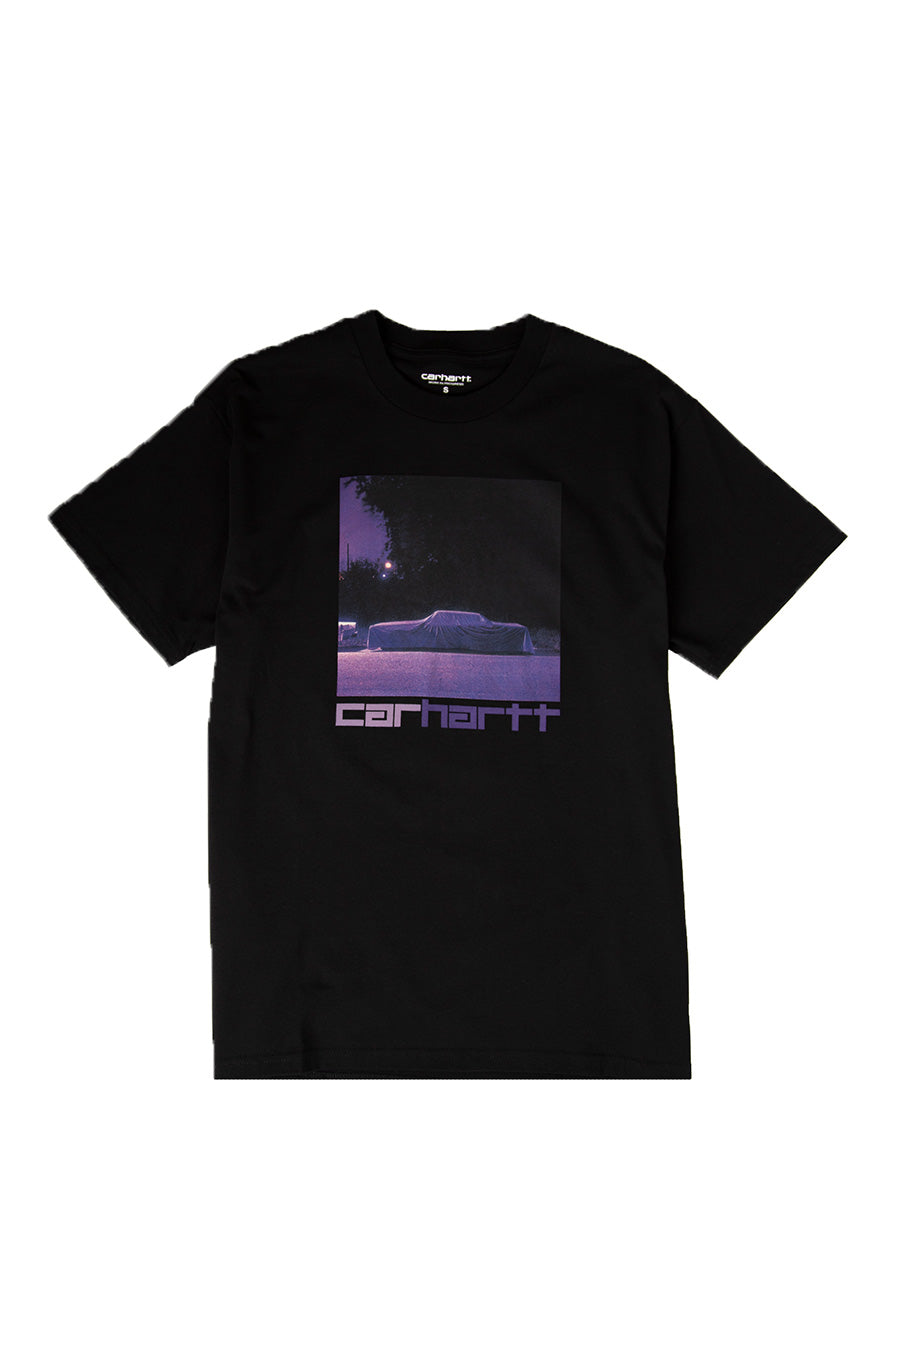 Purple Car T-Shirt